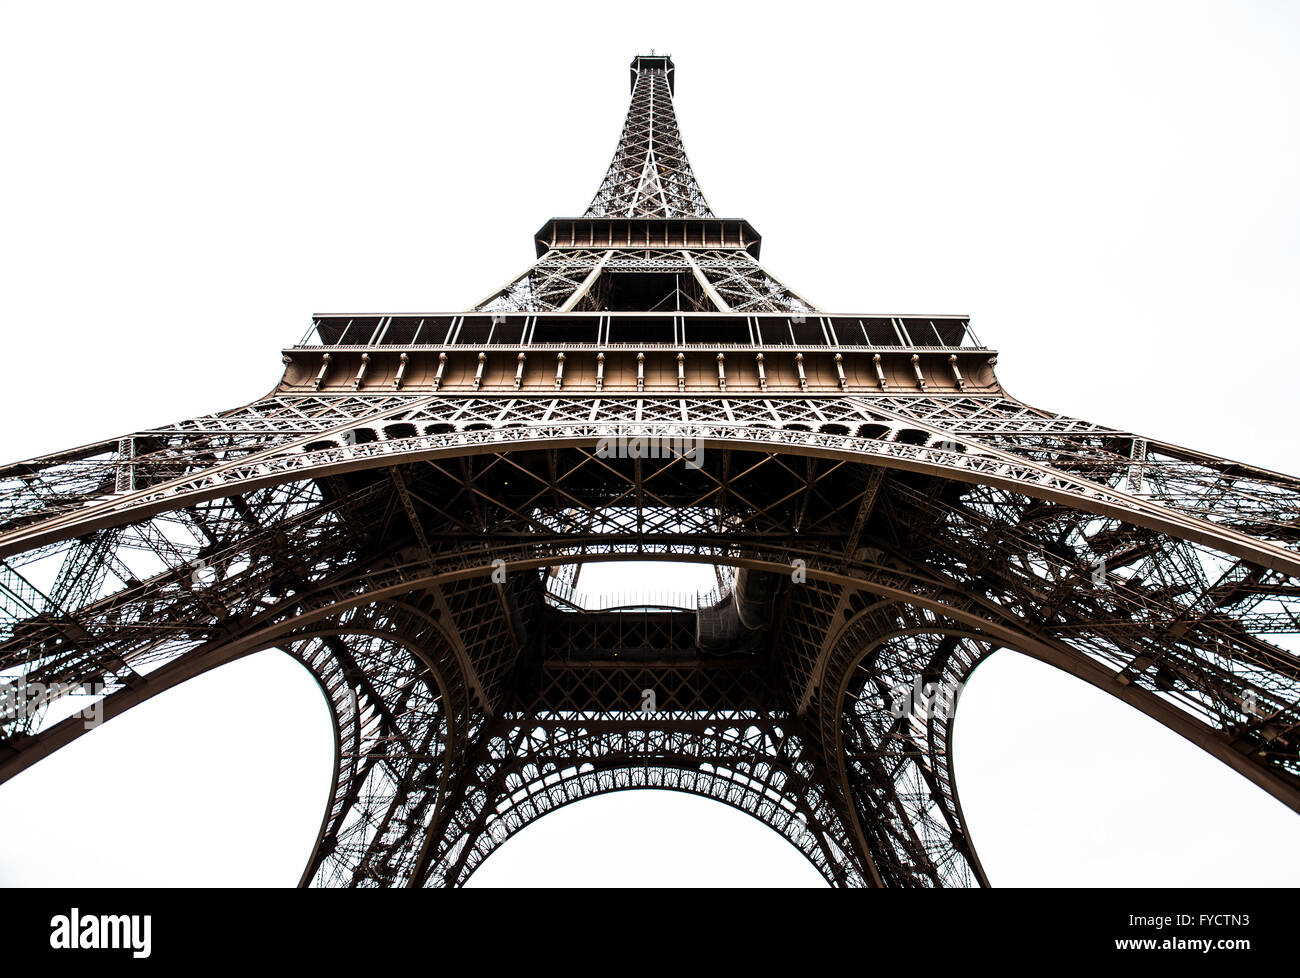 Looking up at the Eiffel Tower against a white background. - Stock Image